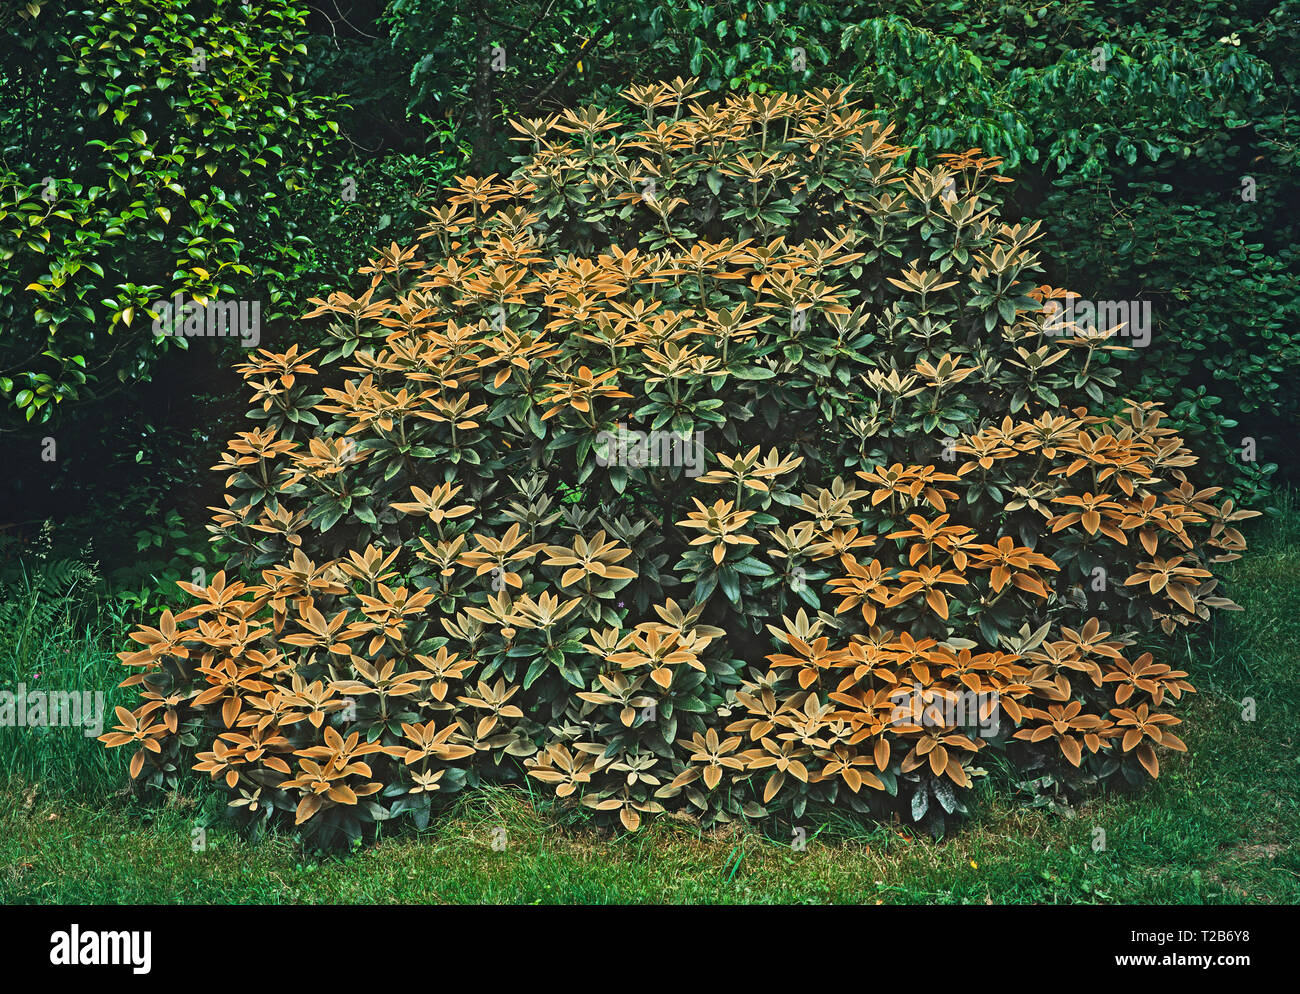 A large bush of Rhododendron pachytricbum in a country garden Stock Photo